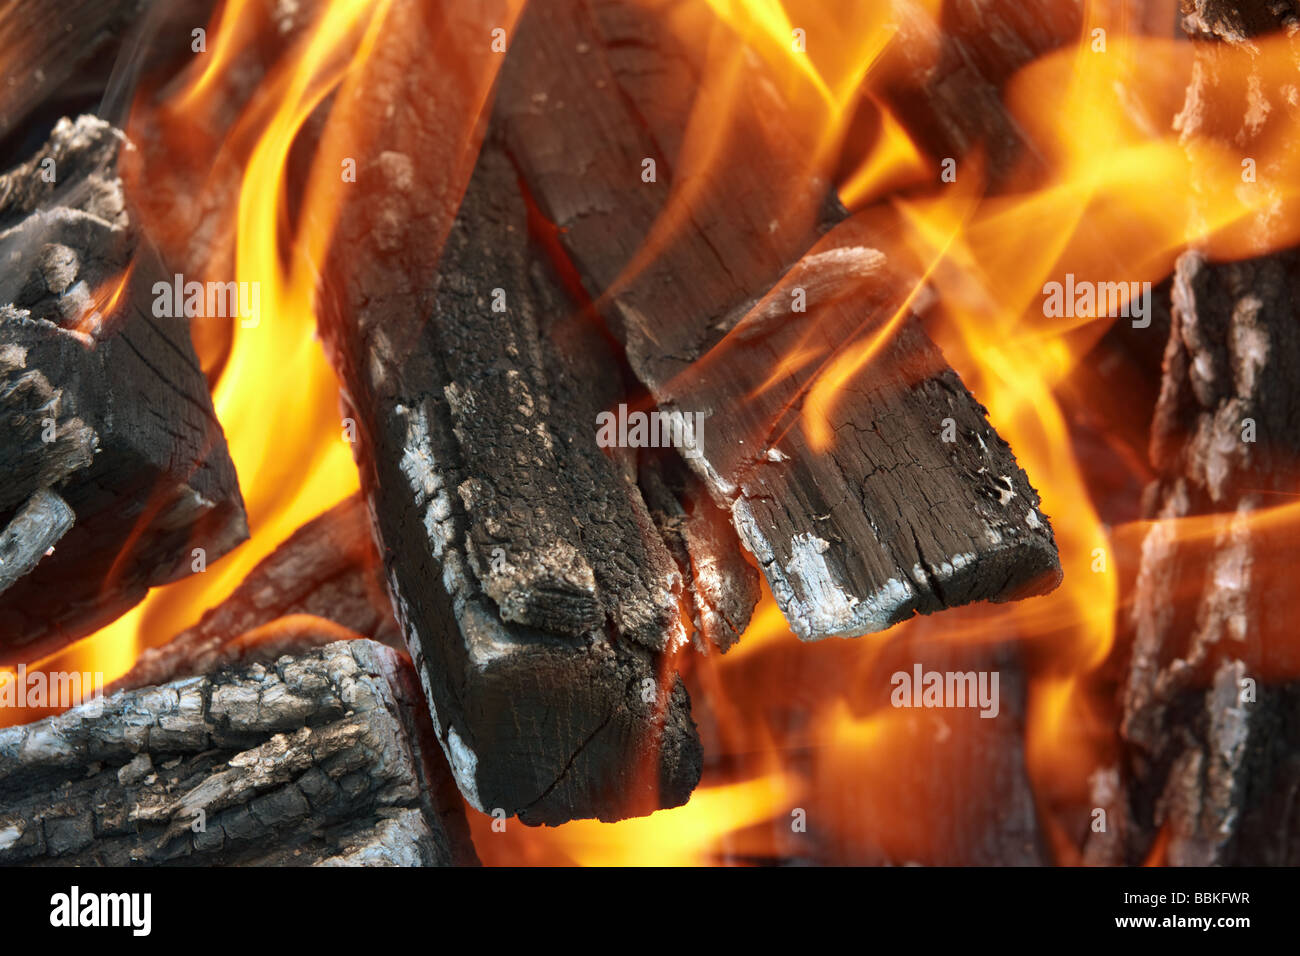 Campfire burning firewood with tongues of flame closeup - Stock Image